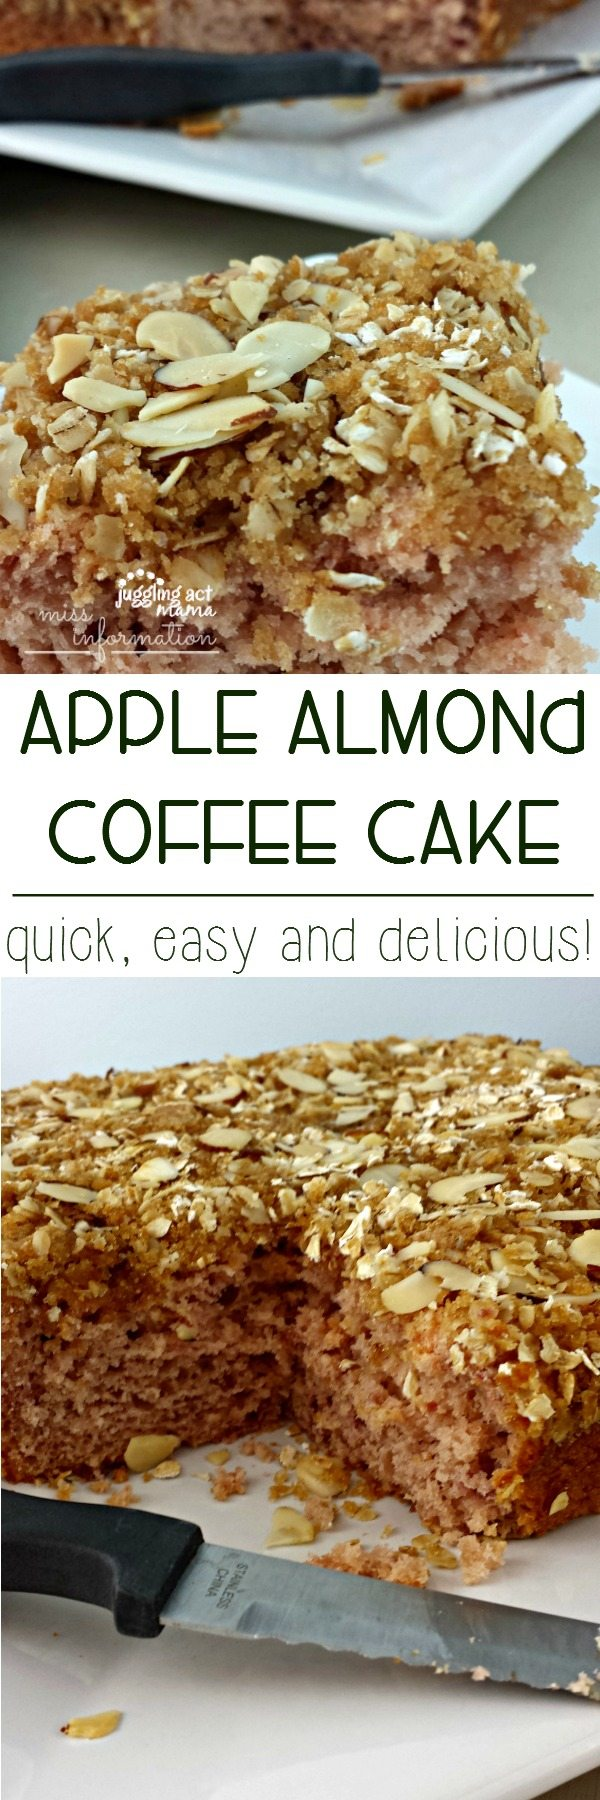 Quick, easy and delicious, Apple Almond Coffee Cake via Juggling Act Mama